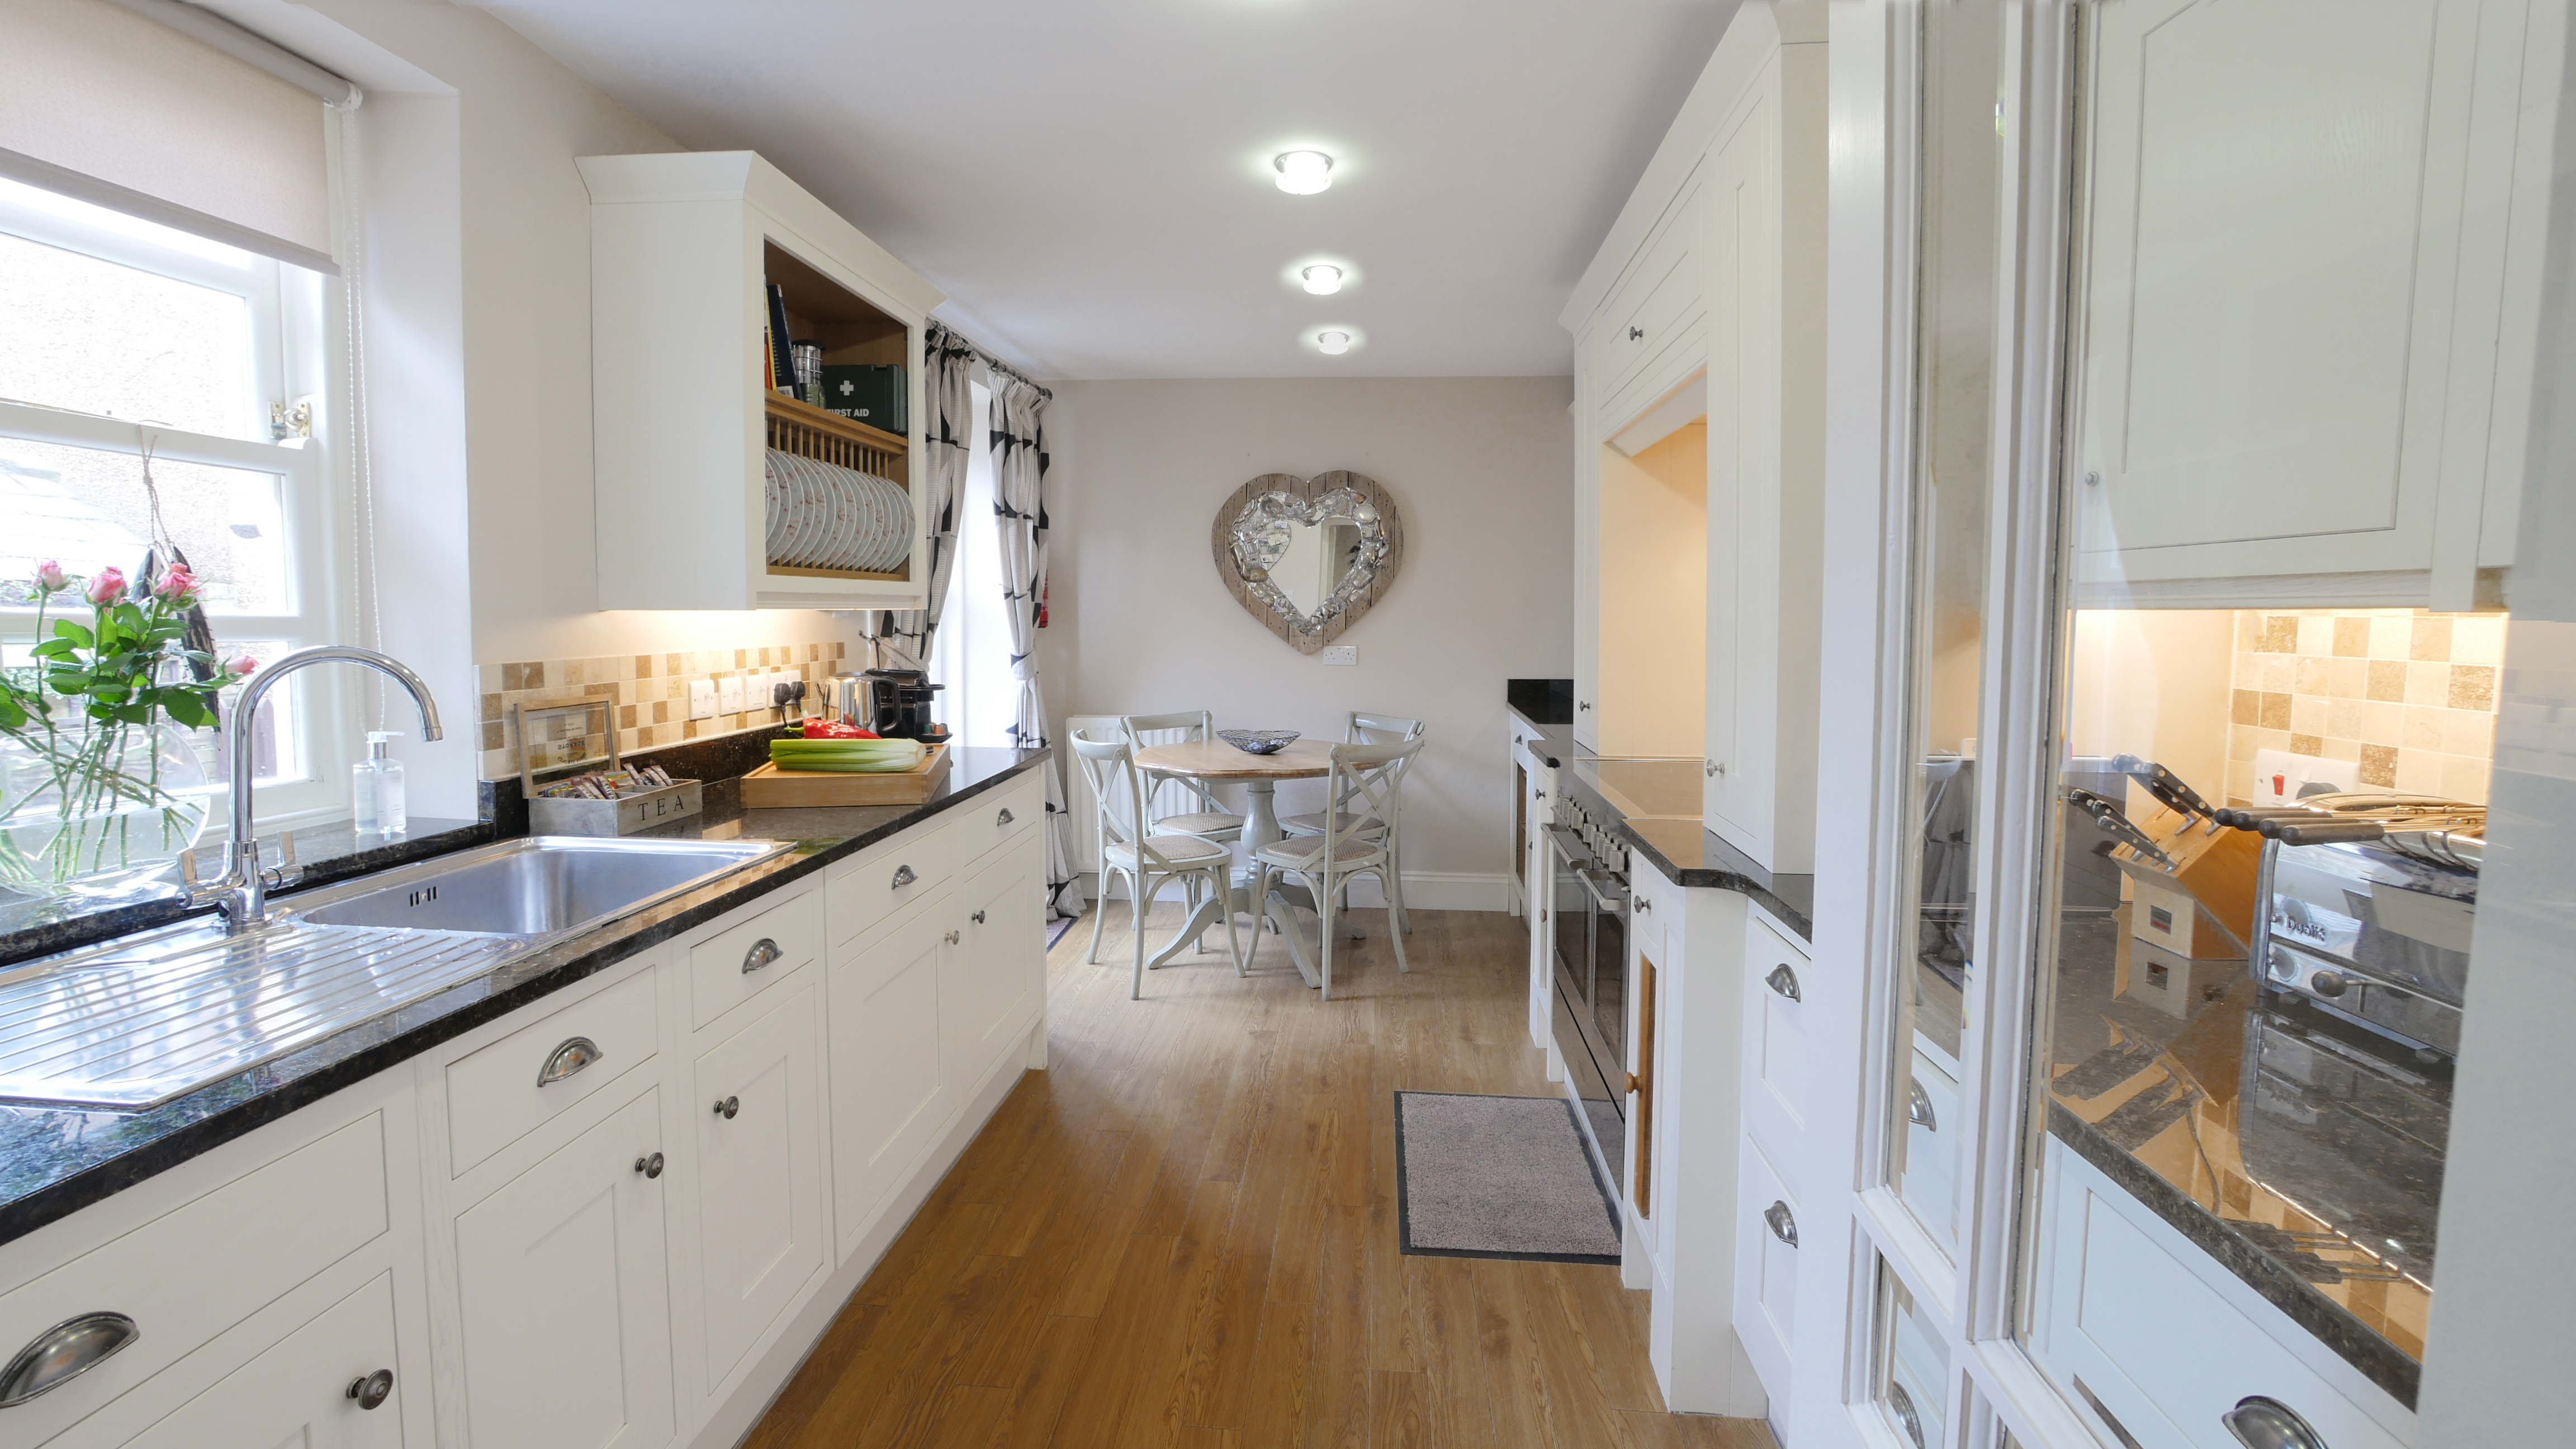 The perfect holiday cottage for New Year - Coquet View in Warkworth Northumberland